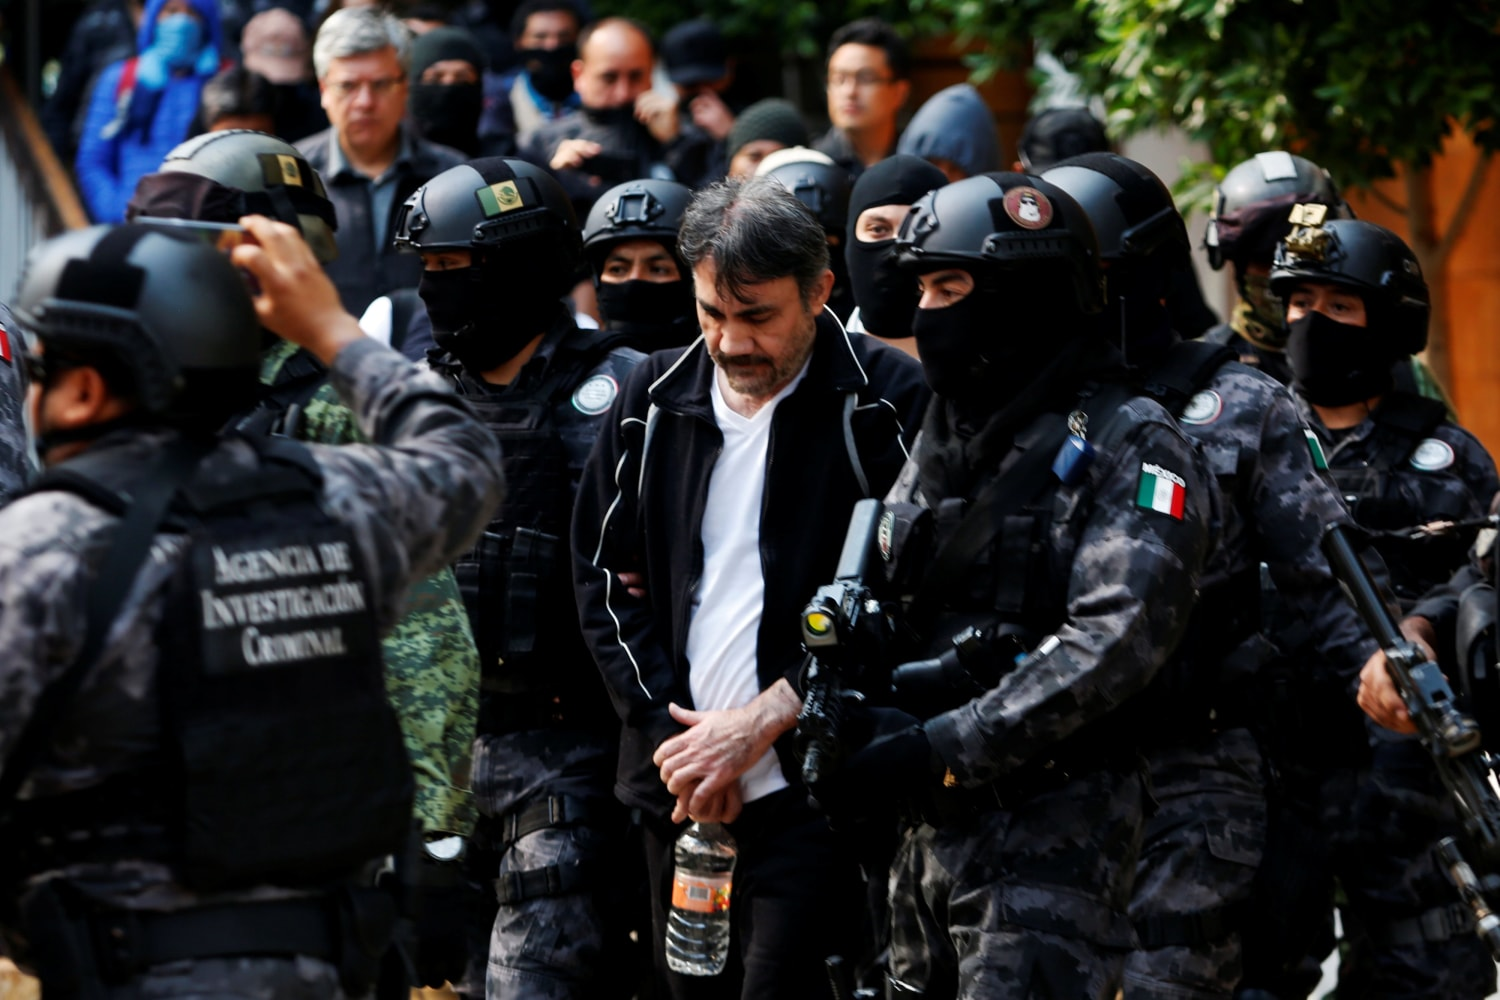 cartel leader damaso lopez captured by mexican authorities